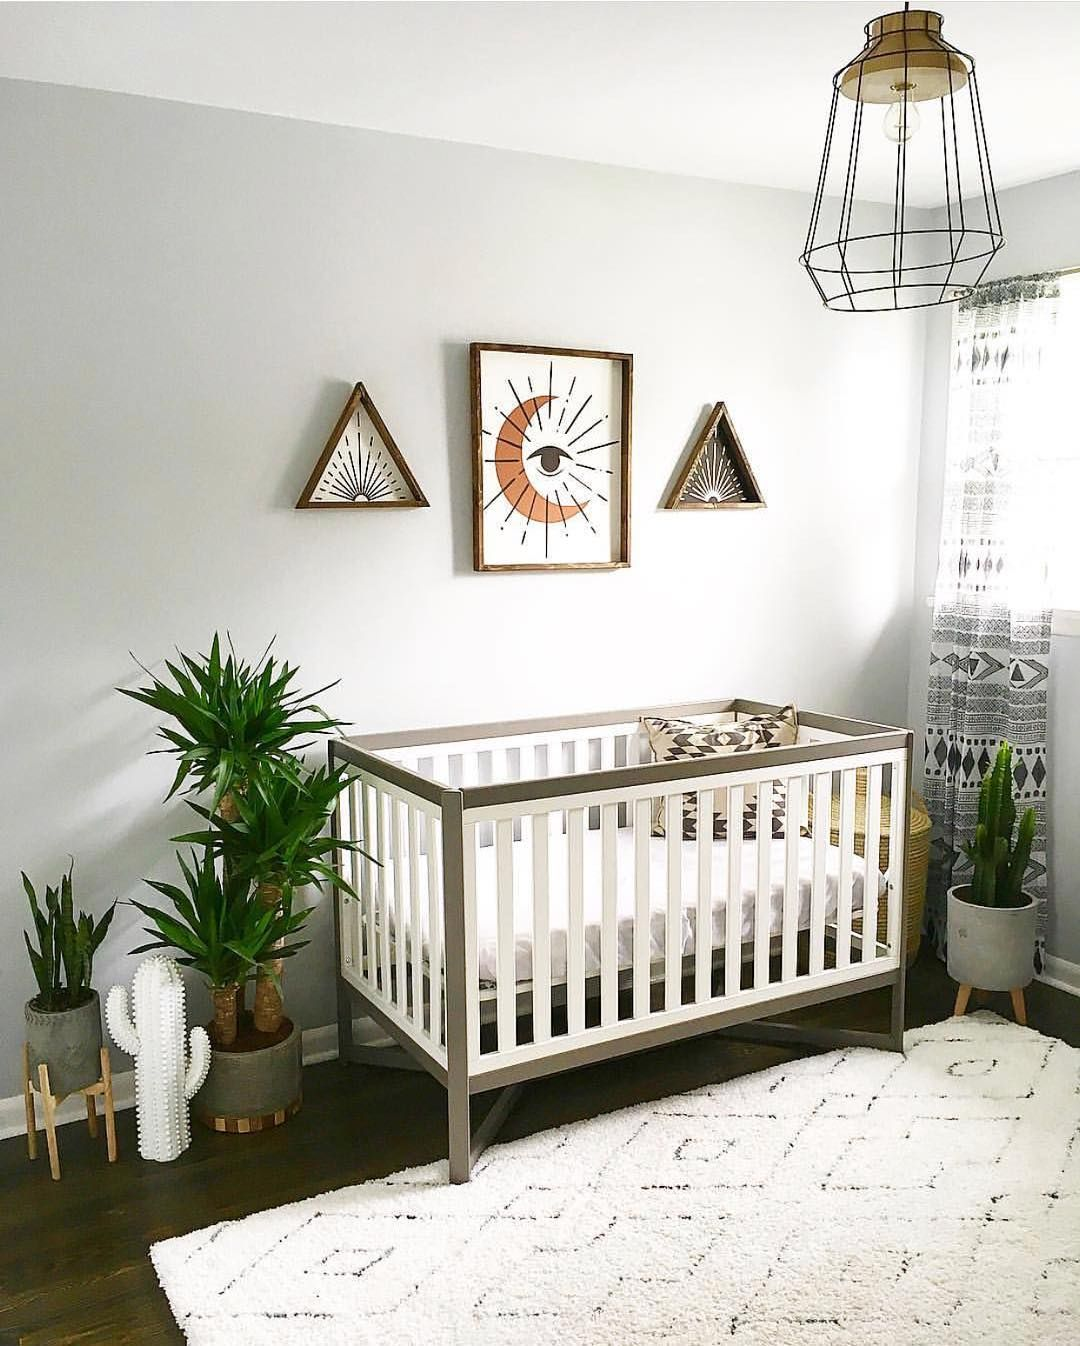 Nursery Inspo Love the use of plants in this nursery. Creates such